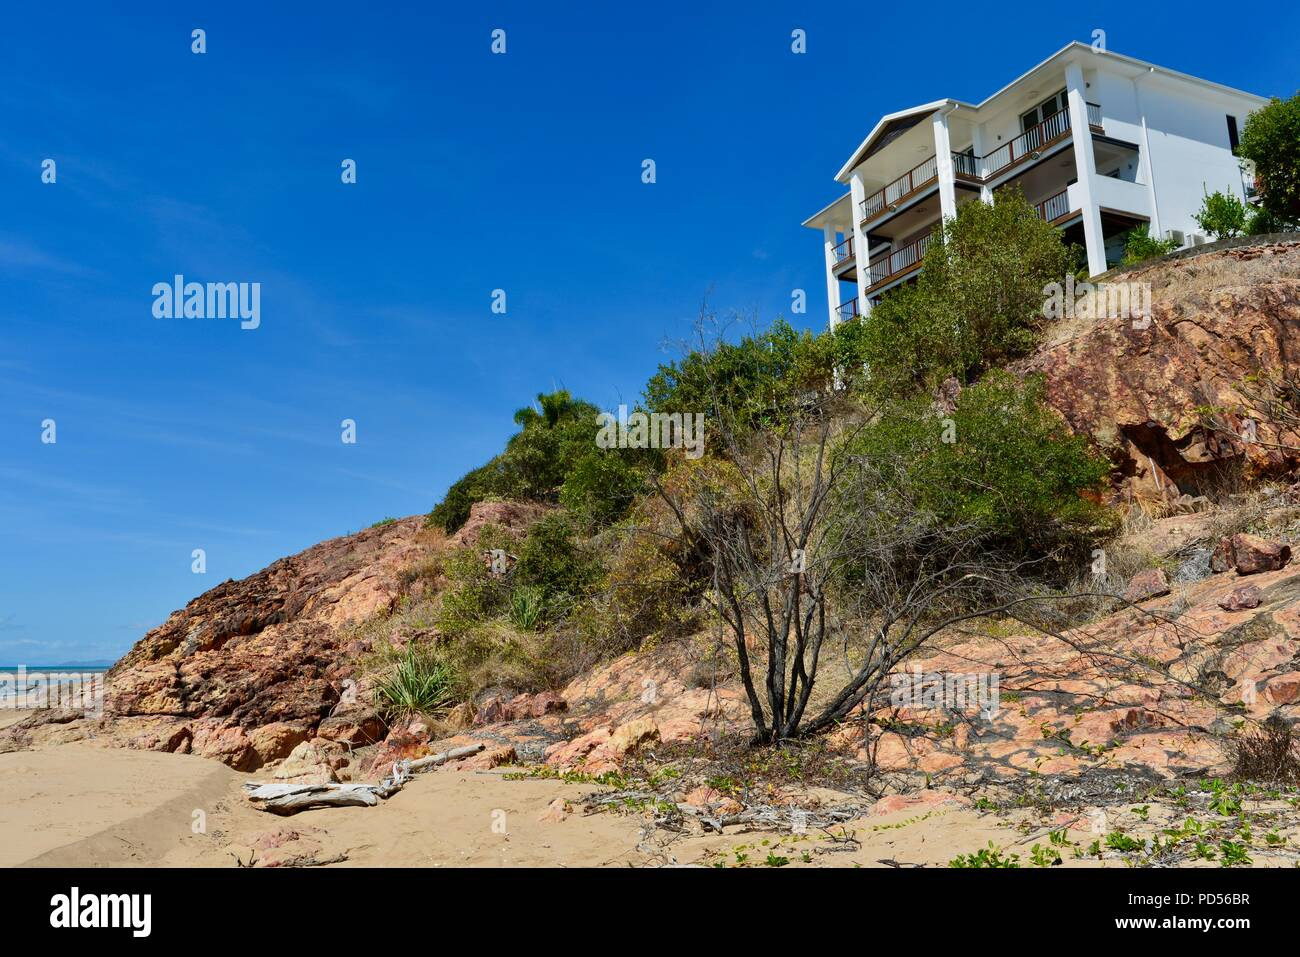 Large white house on a beach, coastal property, Toomulla QLD, Australia Stock Photo